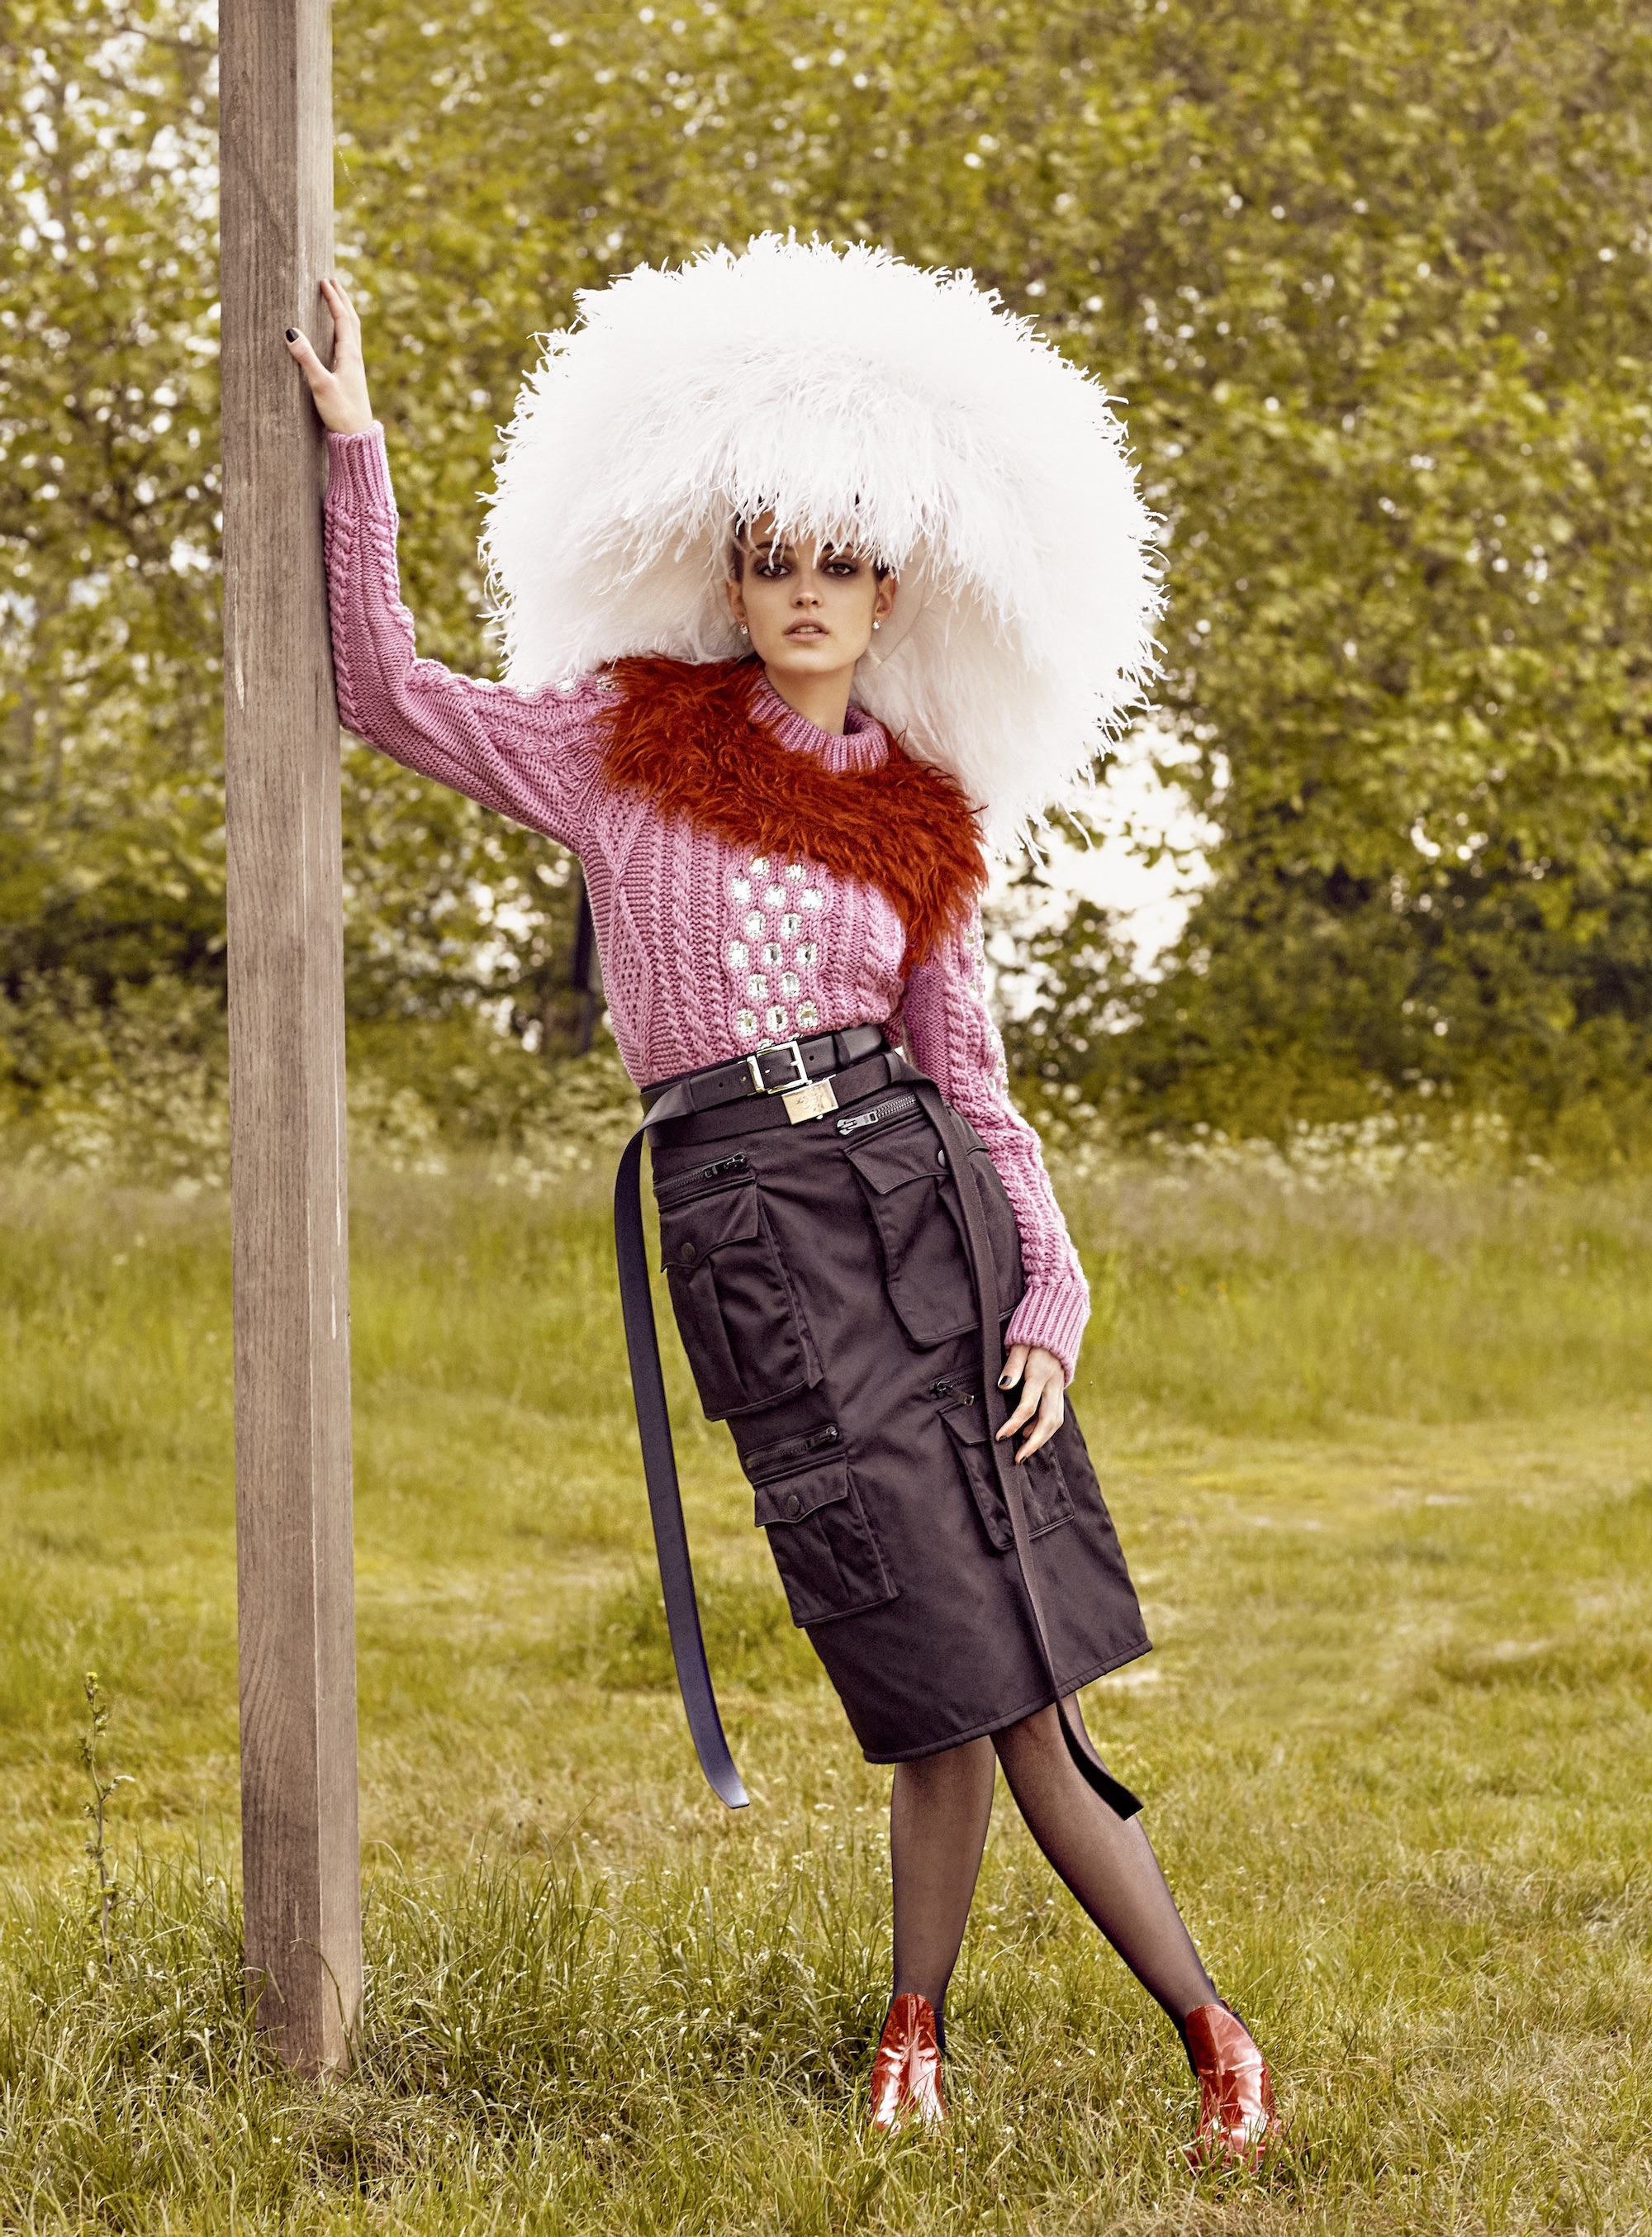 Wonderland baked raindrops editorial fluffy headpiece